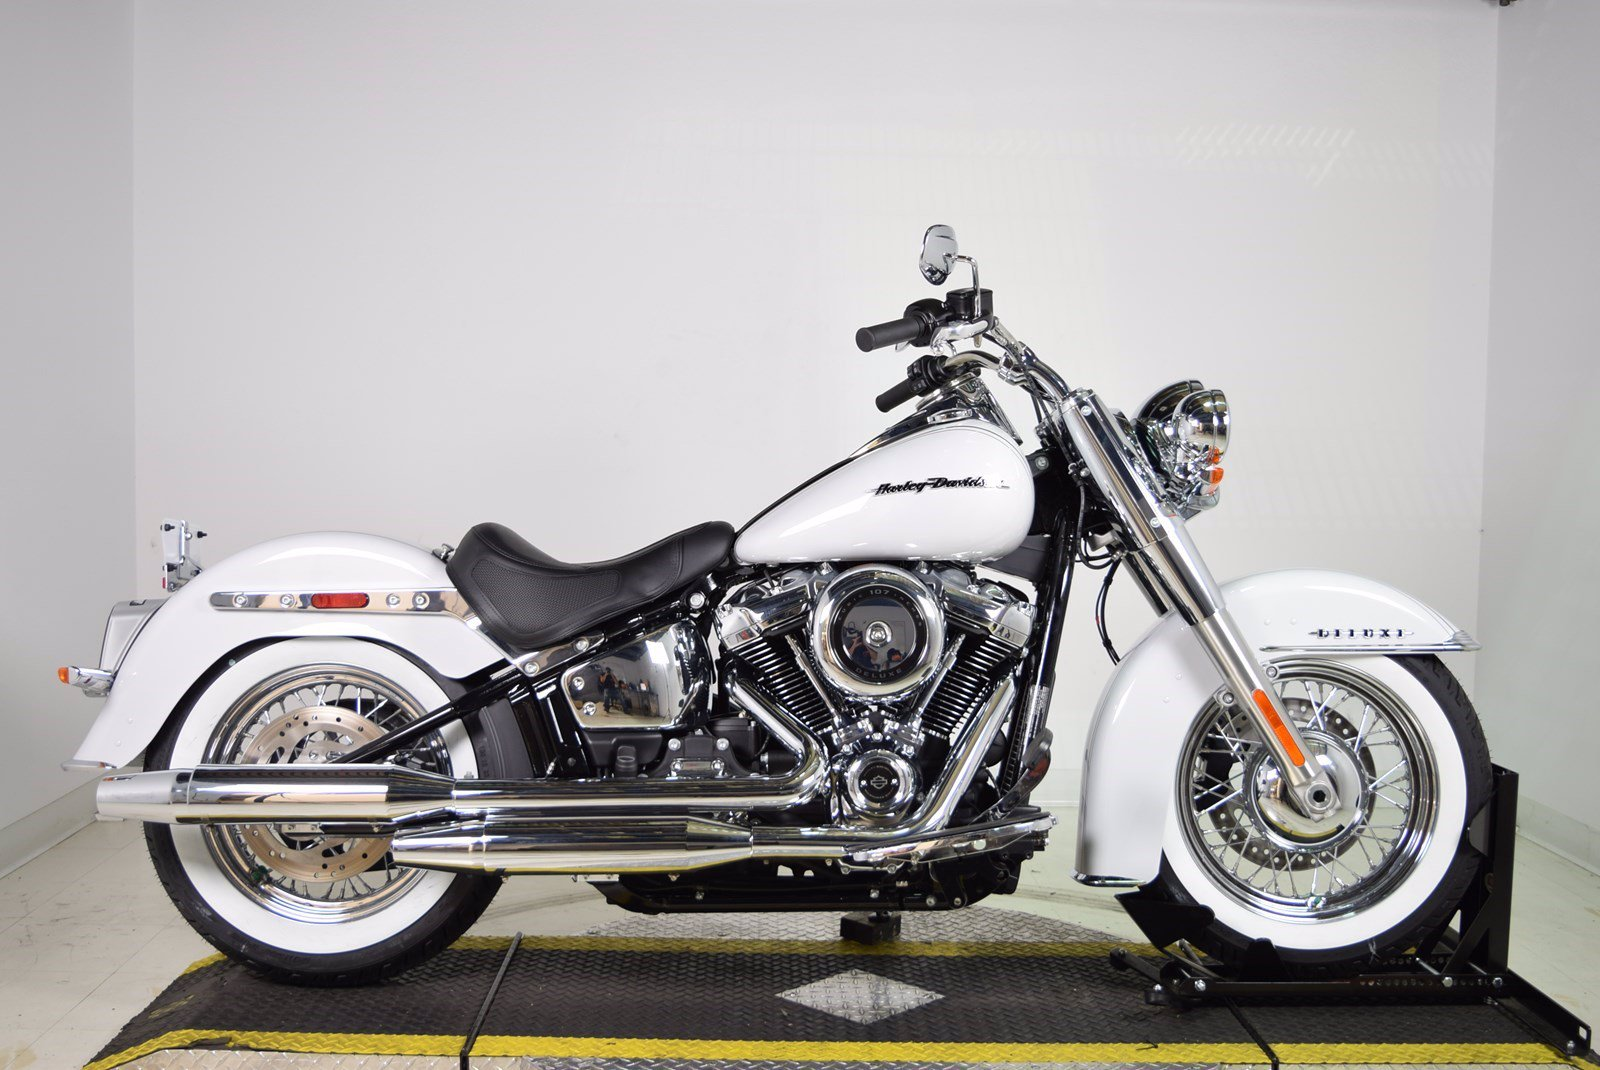 Harley Davidson Softail Deluxe >> New 2020 Harley Davidson Softail Deluxe Flde Softail In